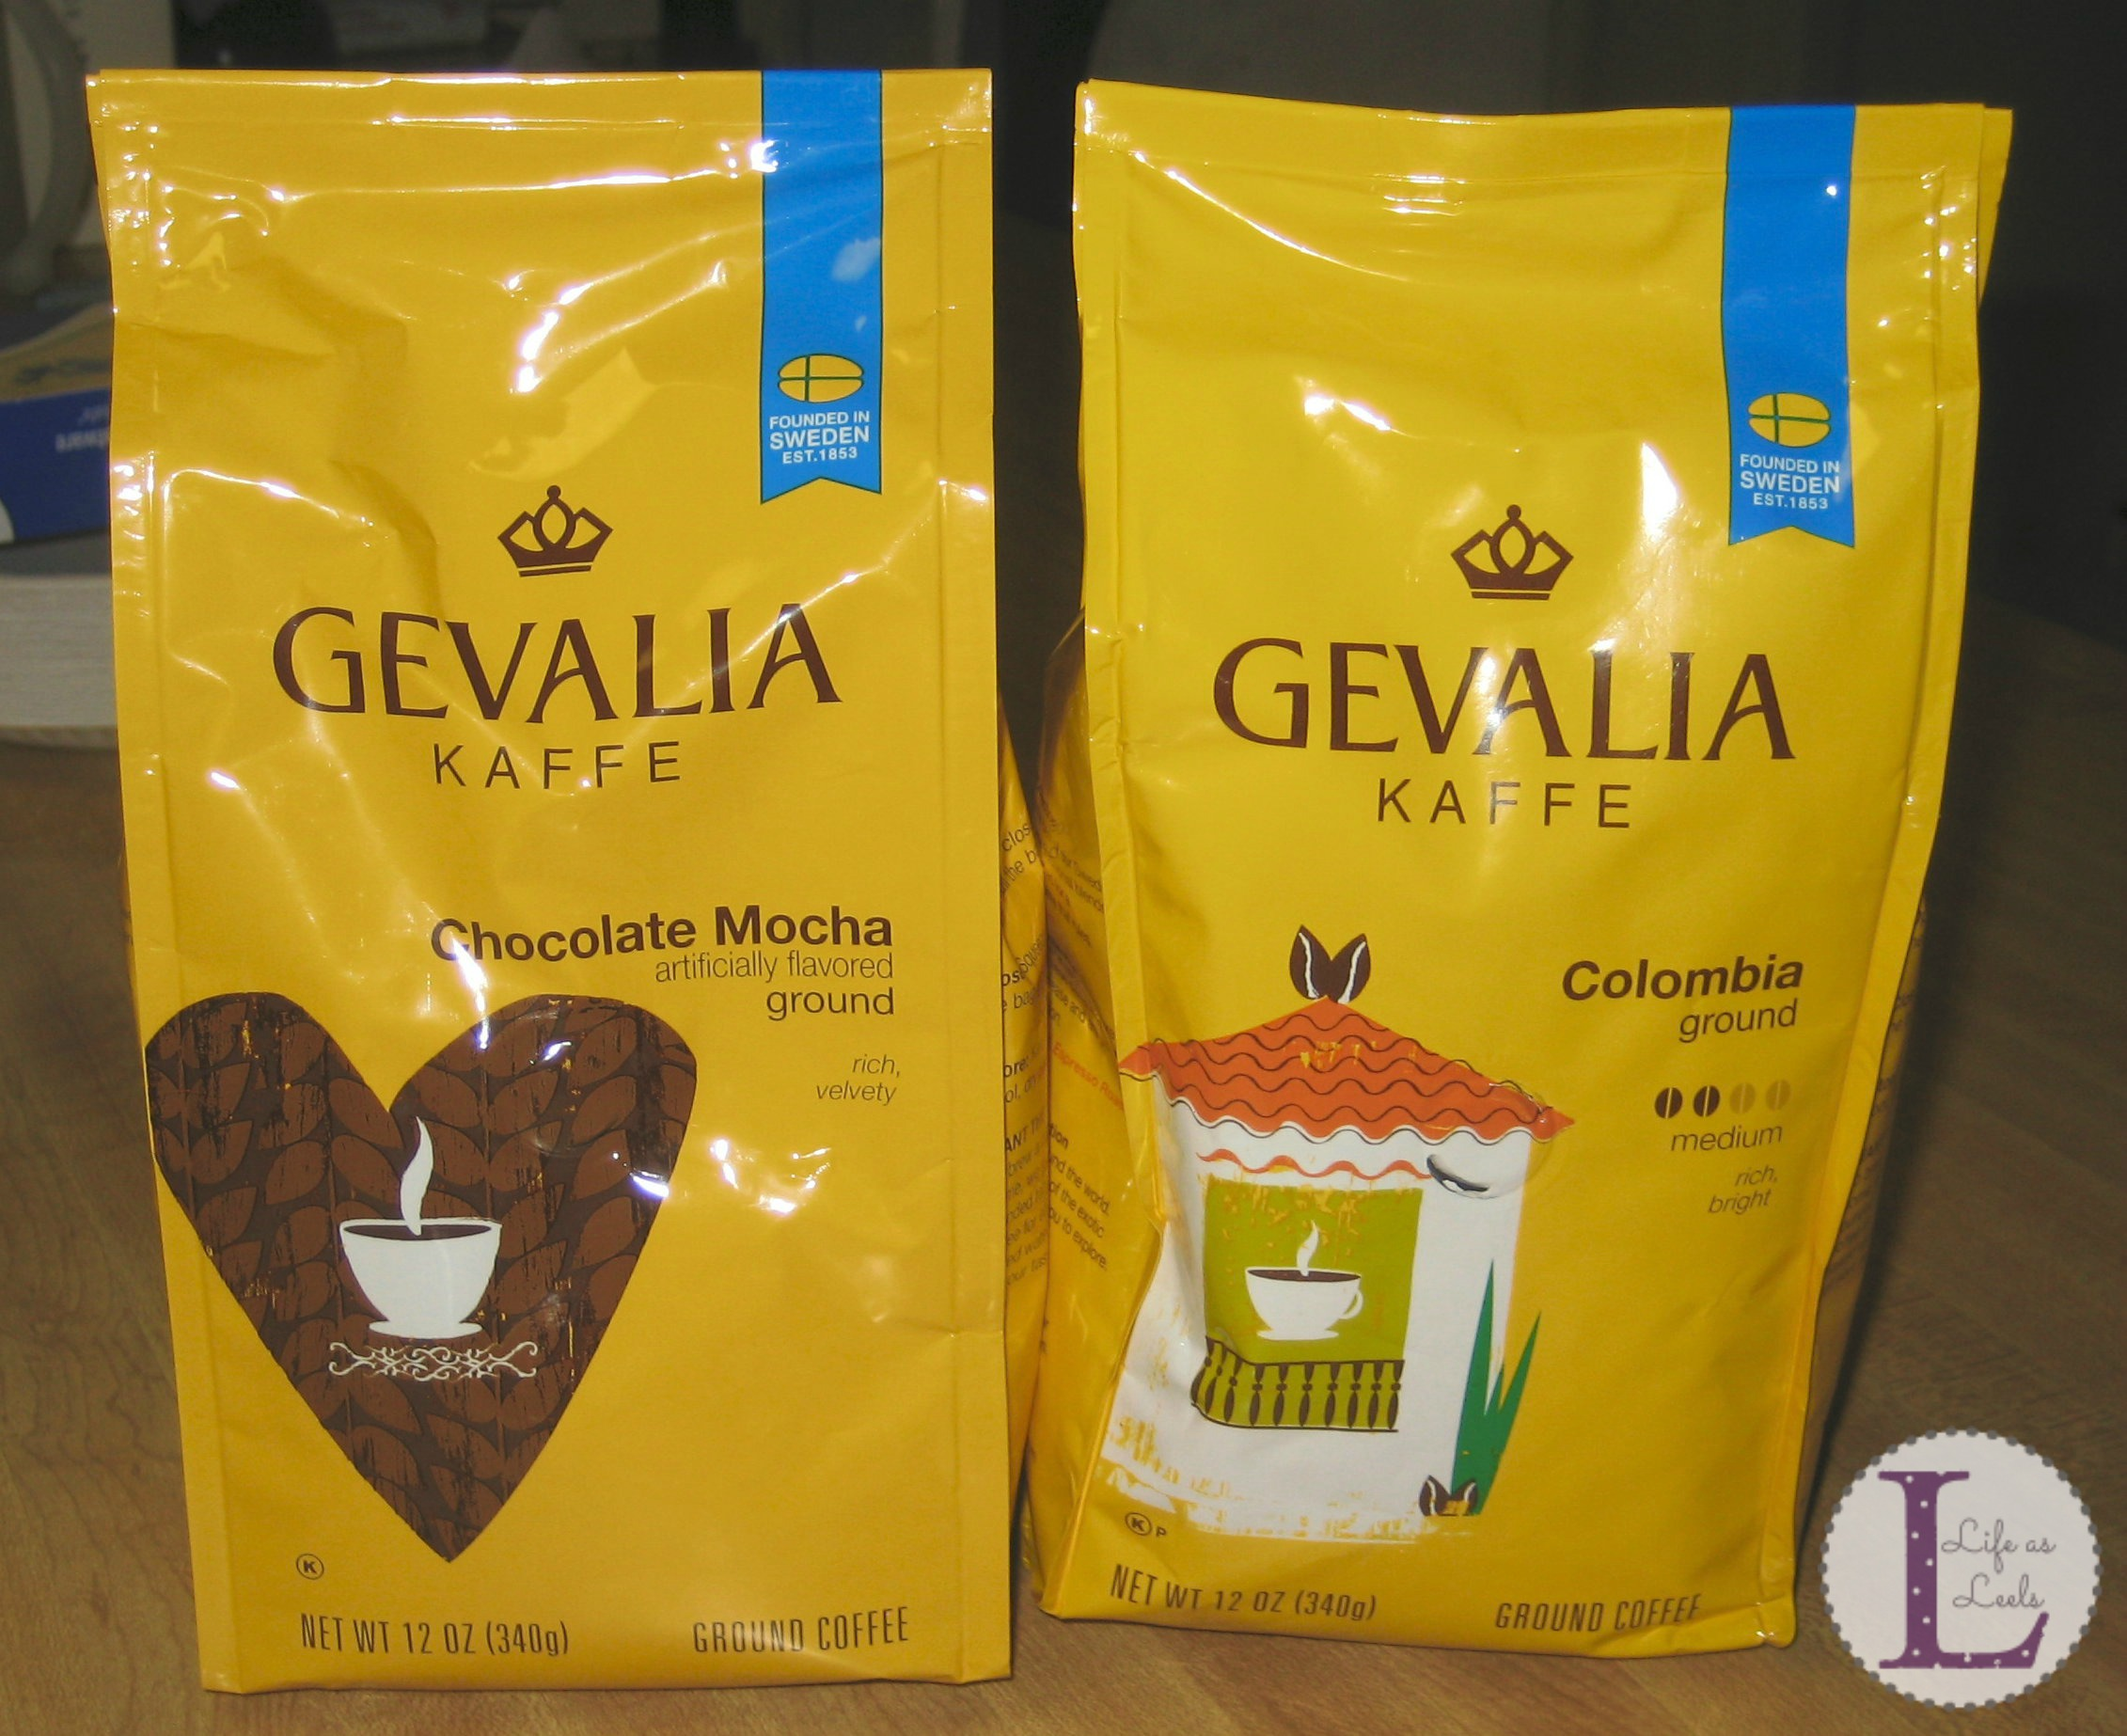 Gevalia Kaffe, purveyor of fine European coffees, has been satisfying the tastes of coffee lovers for generations. Gevalia offers more than 30 varieties of coffee and 13 varieties of tea. This wide selection allows Gevalia to suit the various personal tastes, moods, and desires of .